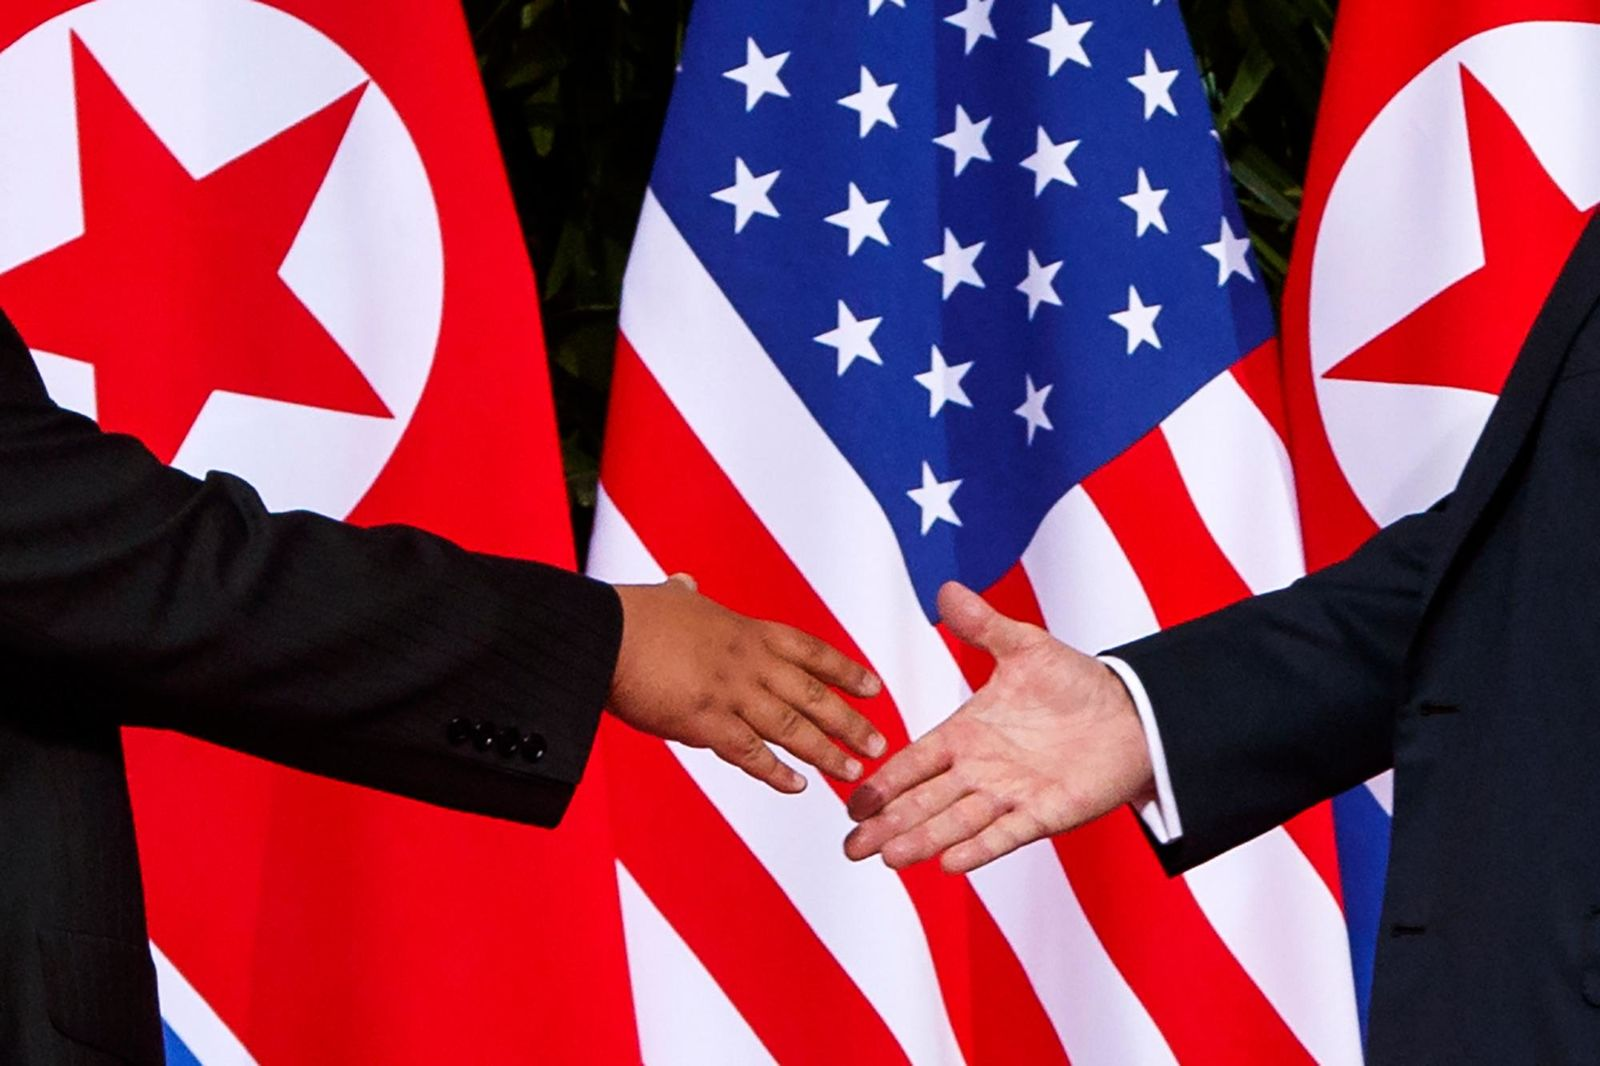 FILE - In this Tuesday, June 12, 2018, file photo, U.S. President Donald Trump, right, reaches to shake hands with North Korea leader Kim Jong Un at the Capella resort on Sentosa Island in Singapore. (AP Photo/Evan Vucci, File)